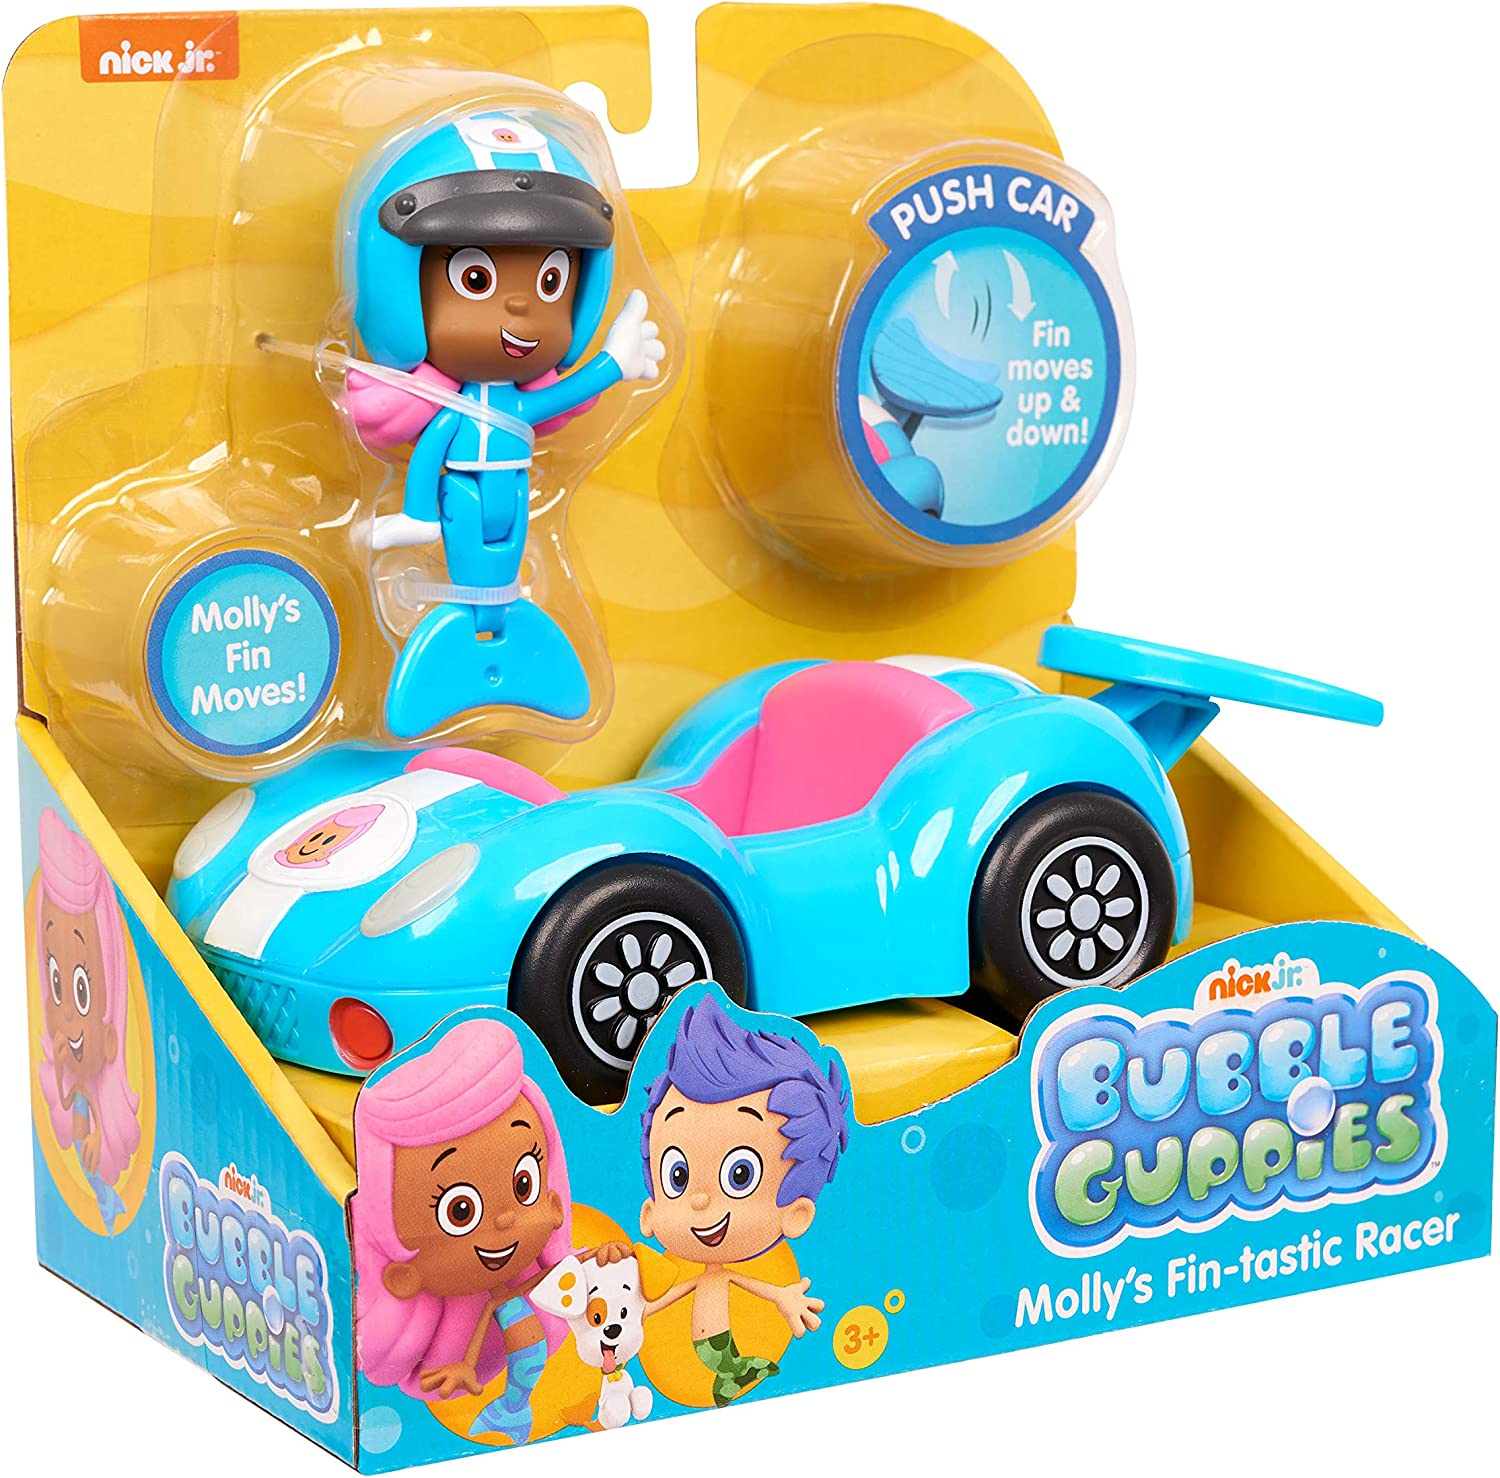 Fin Moves Up /& Doawn Bubble Guppies Mollys Fin-Tastic Racer Push Car Mollys Fin Moves!